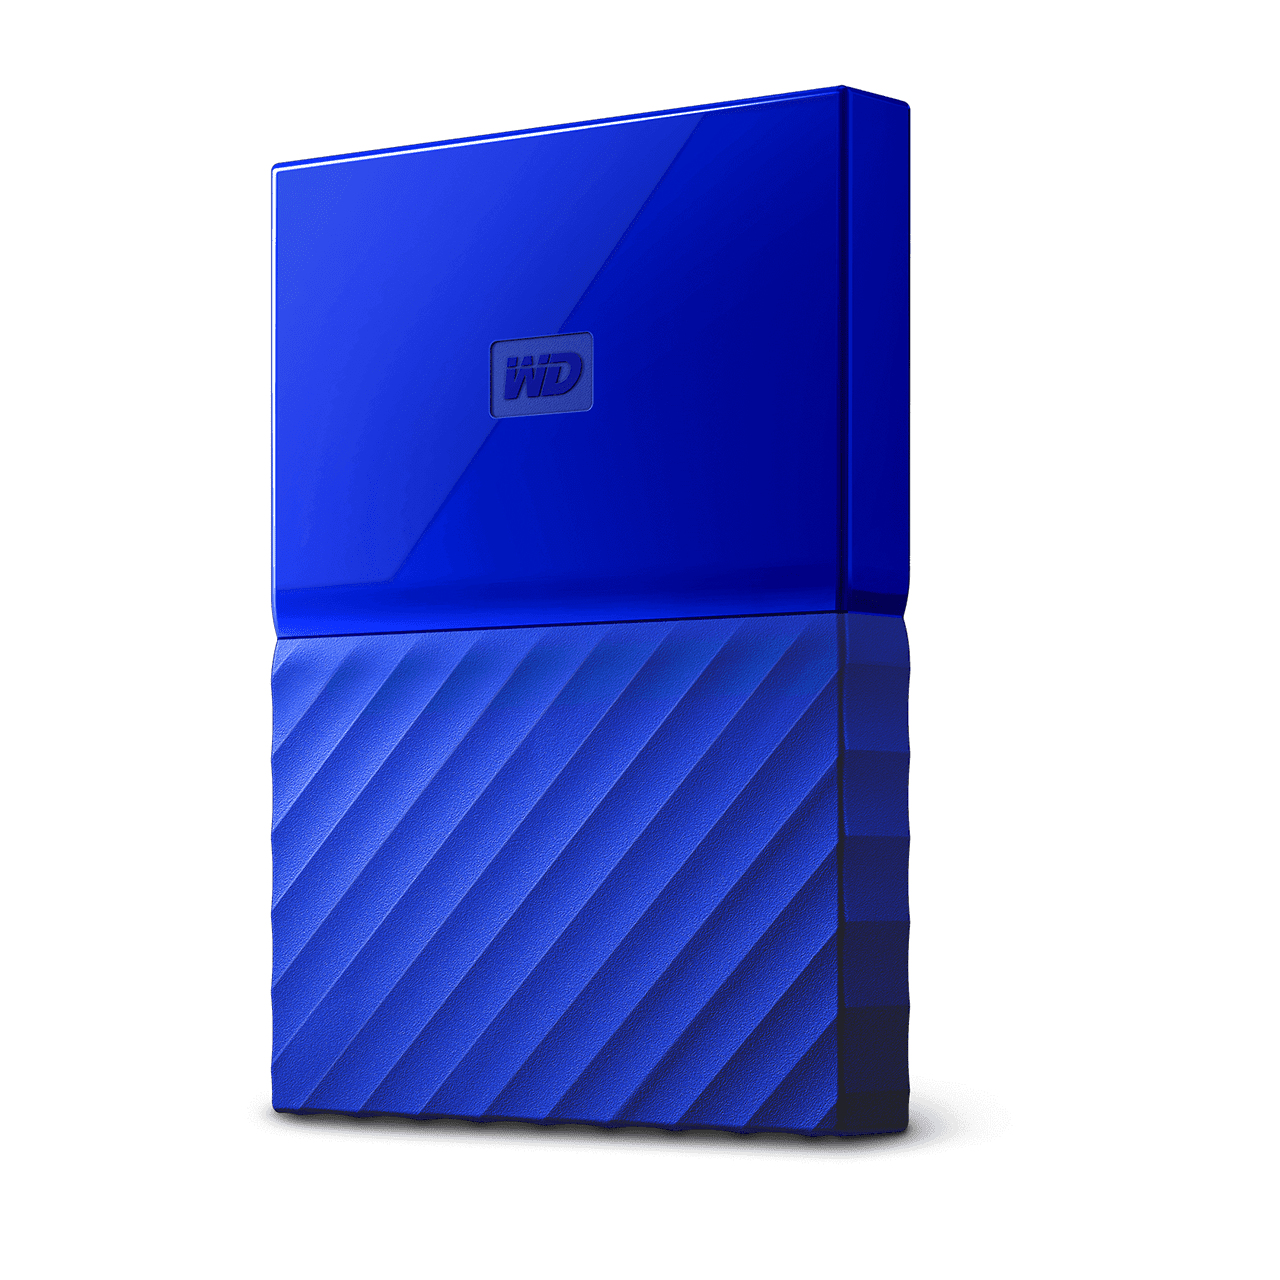 Western Digital My Passport external hard drive 3000 GB Blue